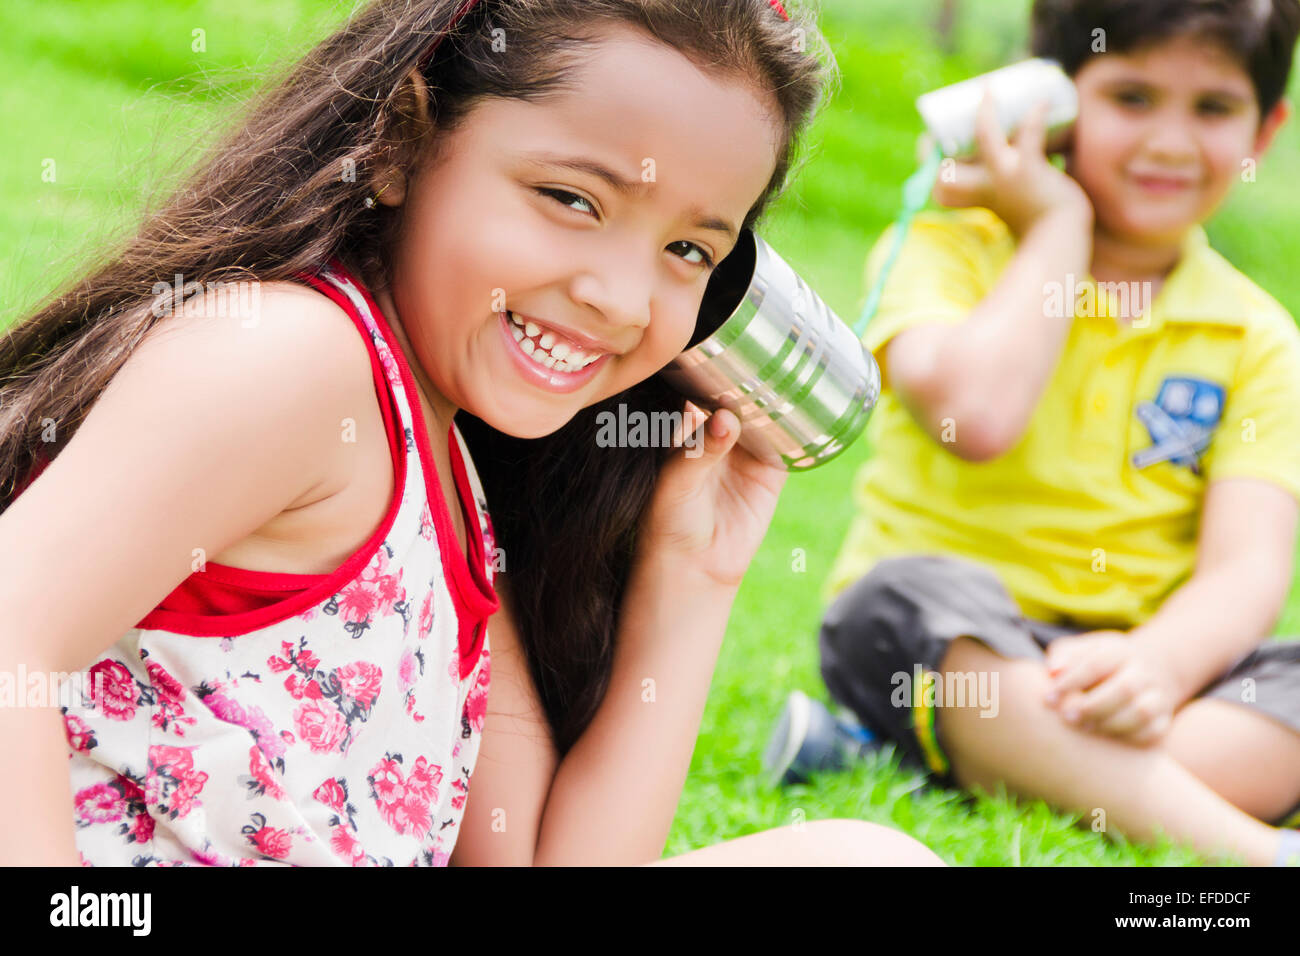 2 indian children friend park toy phone talking - Stock Image